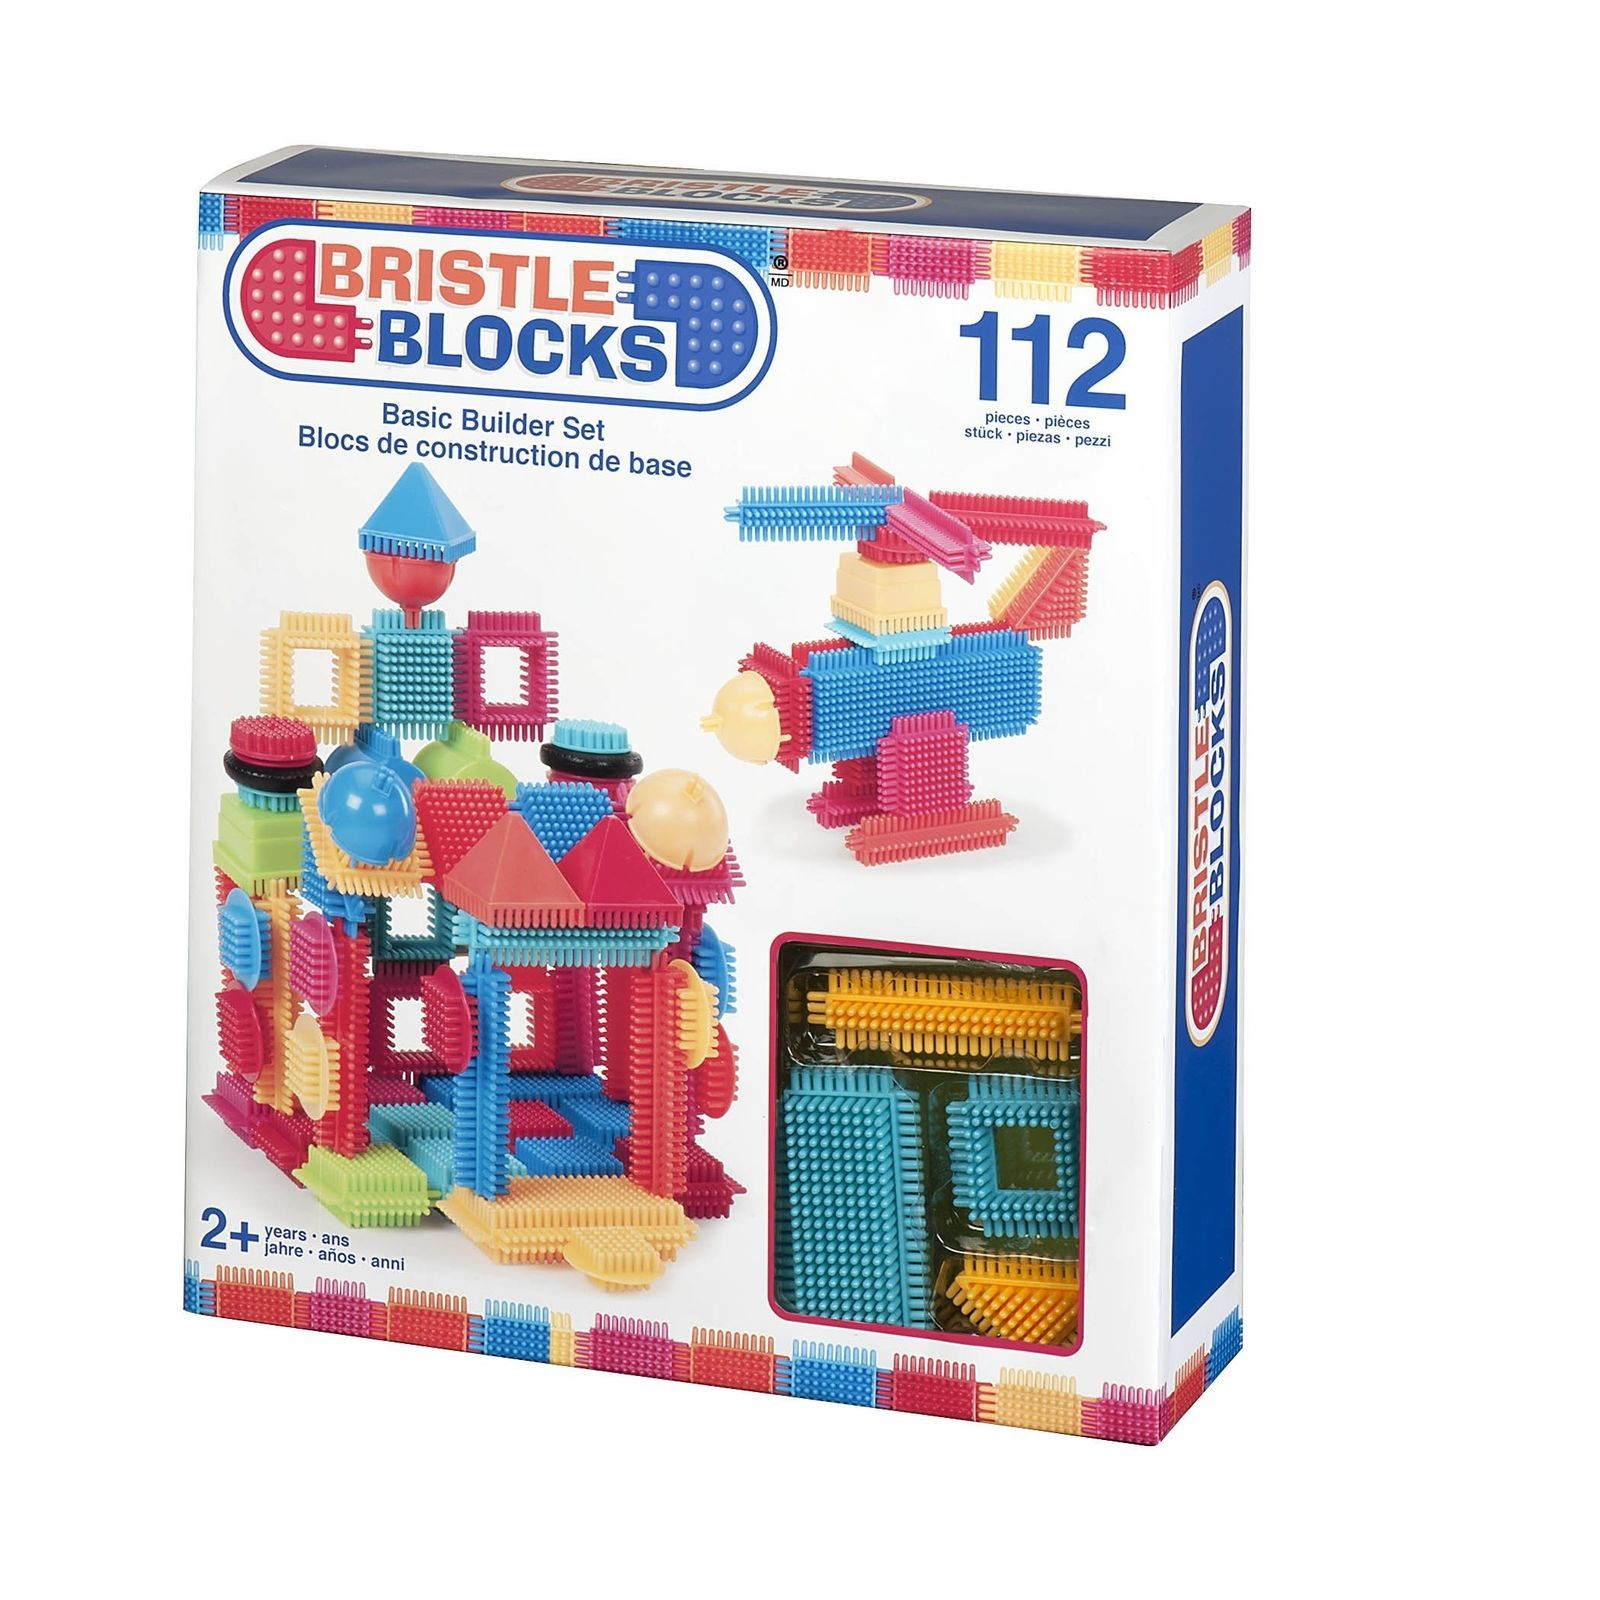 Bristle Blocks Toy Building Blocks for Toddlers (112 pieces New) Battat Toys